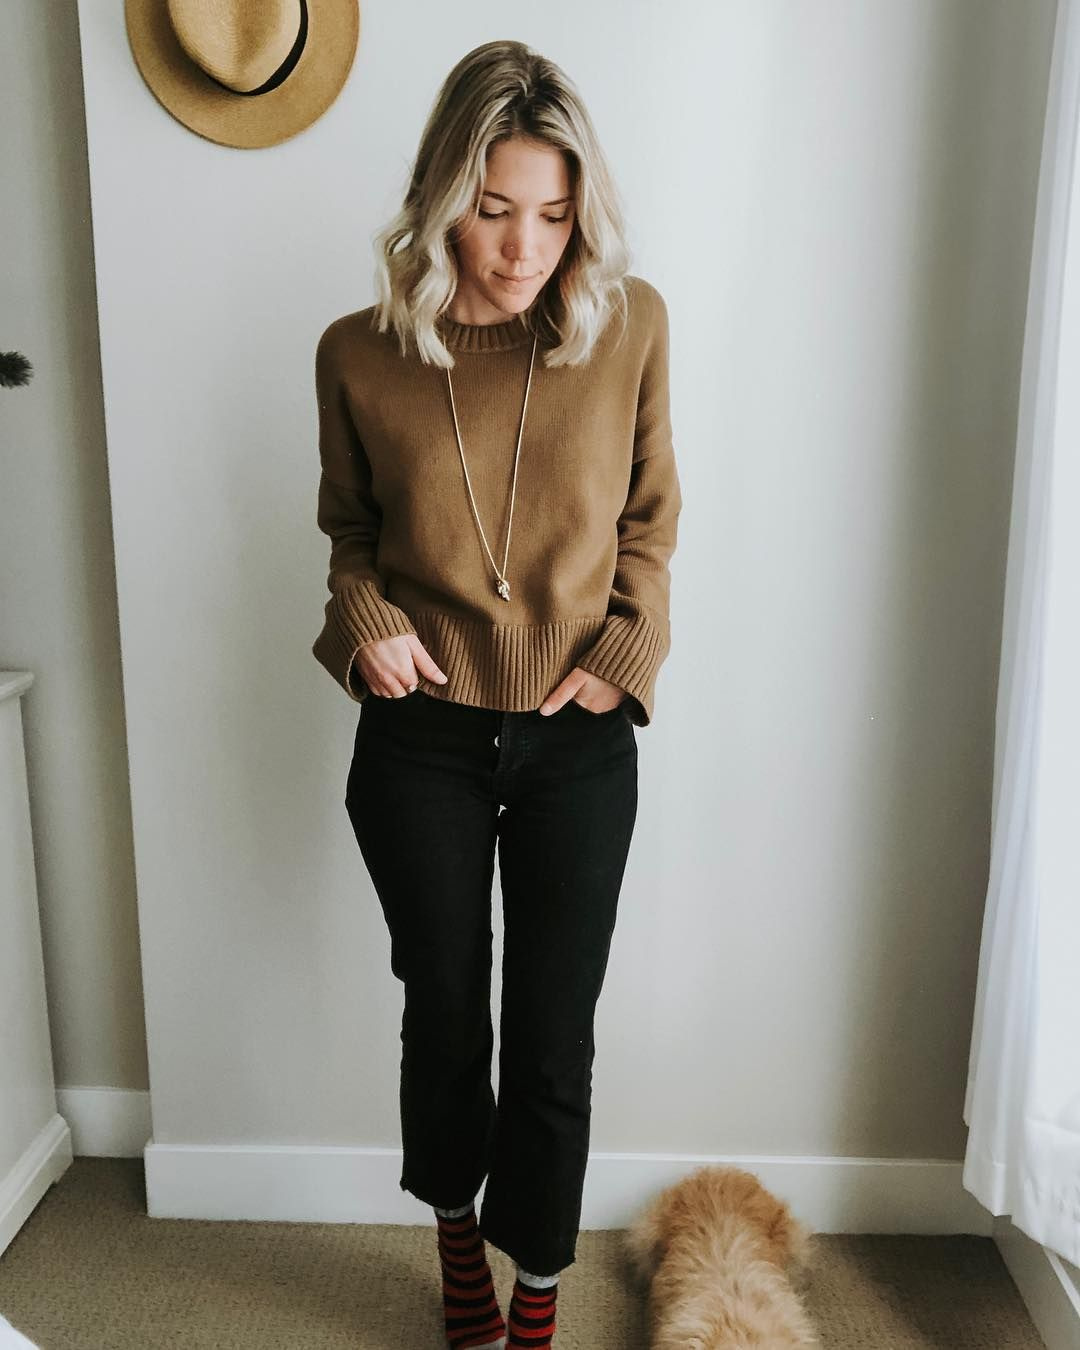 ea2069e3d0 This Everlane cotton crew, combined with the black washed denim from Comune  is on major repeat this fall/winter. #ethicallymade #capsulewardrobe # ...